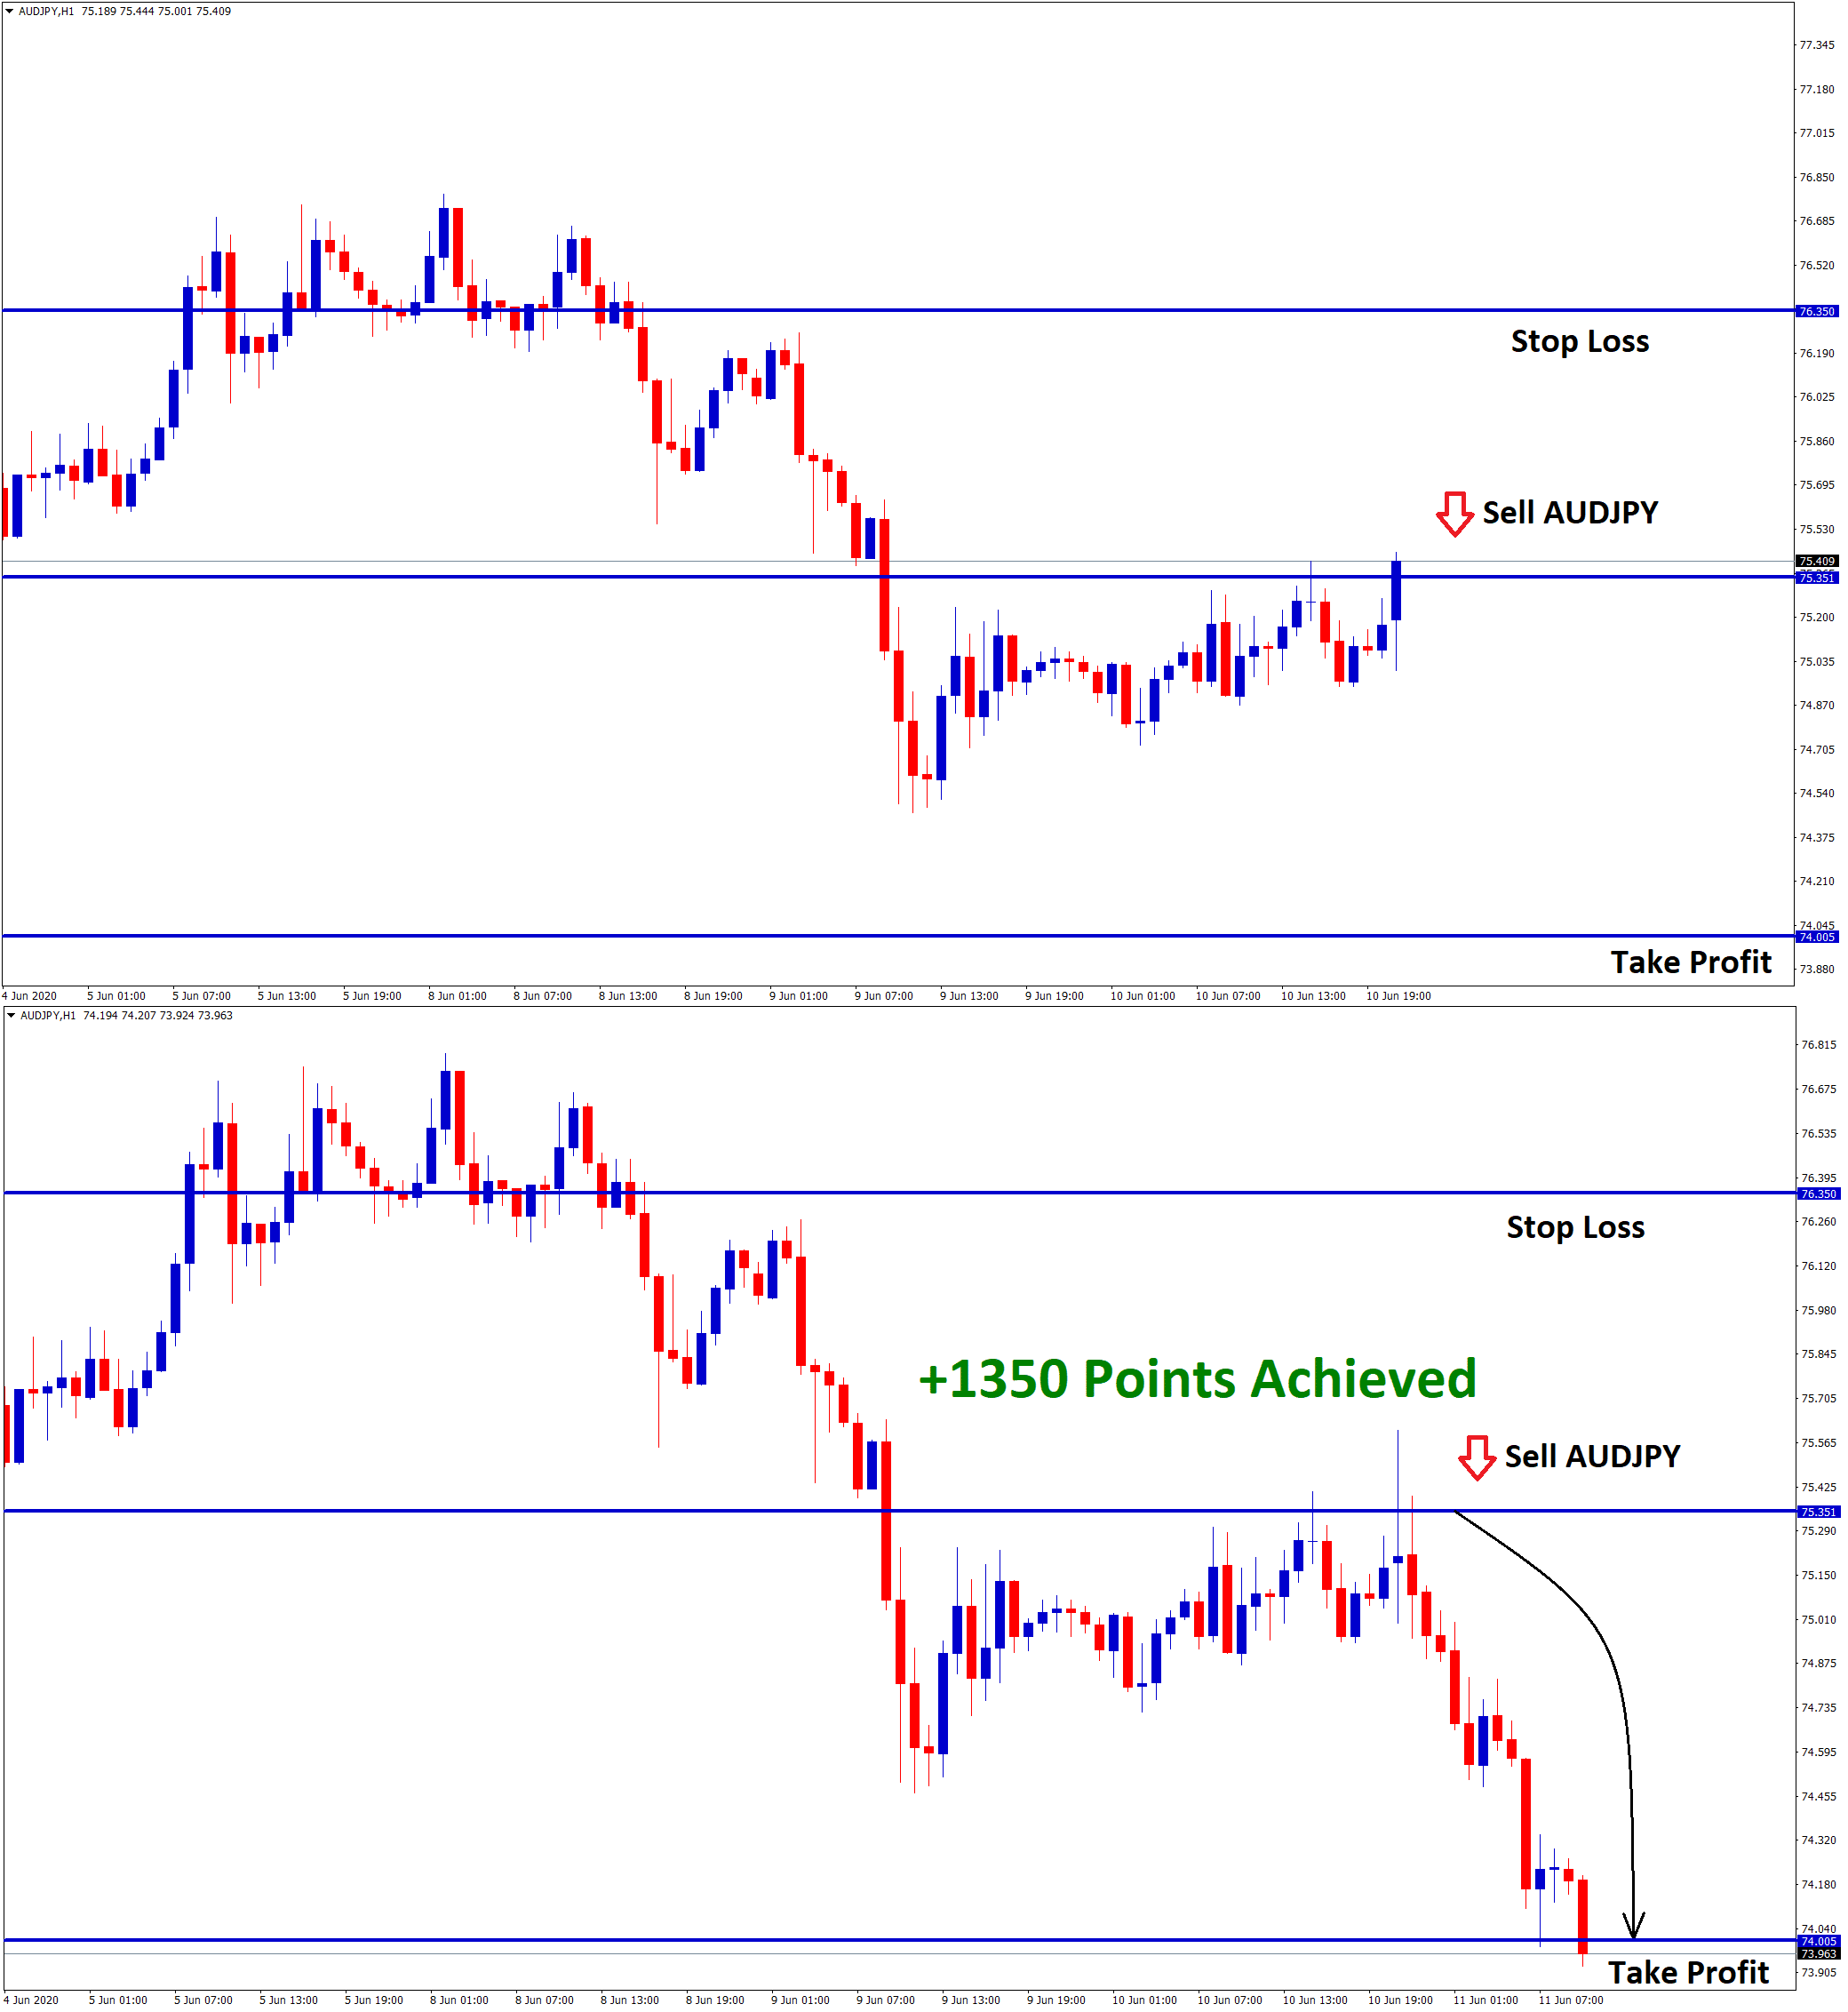 audjpy achieved 1350 points profit in sell